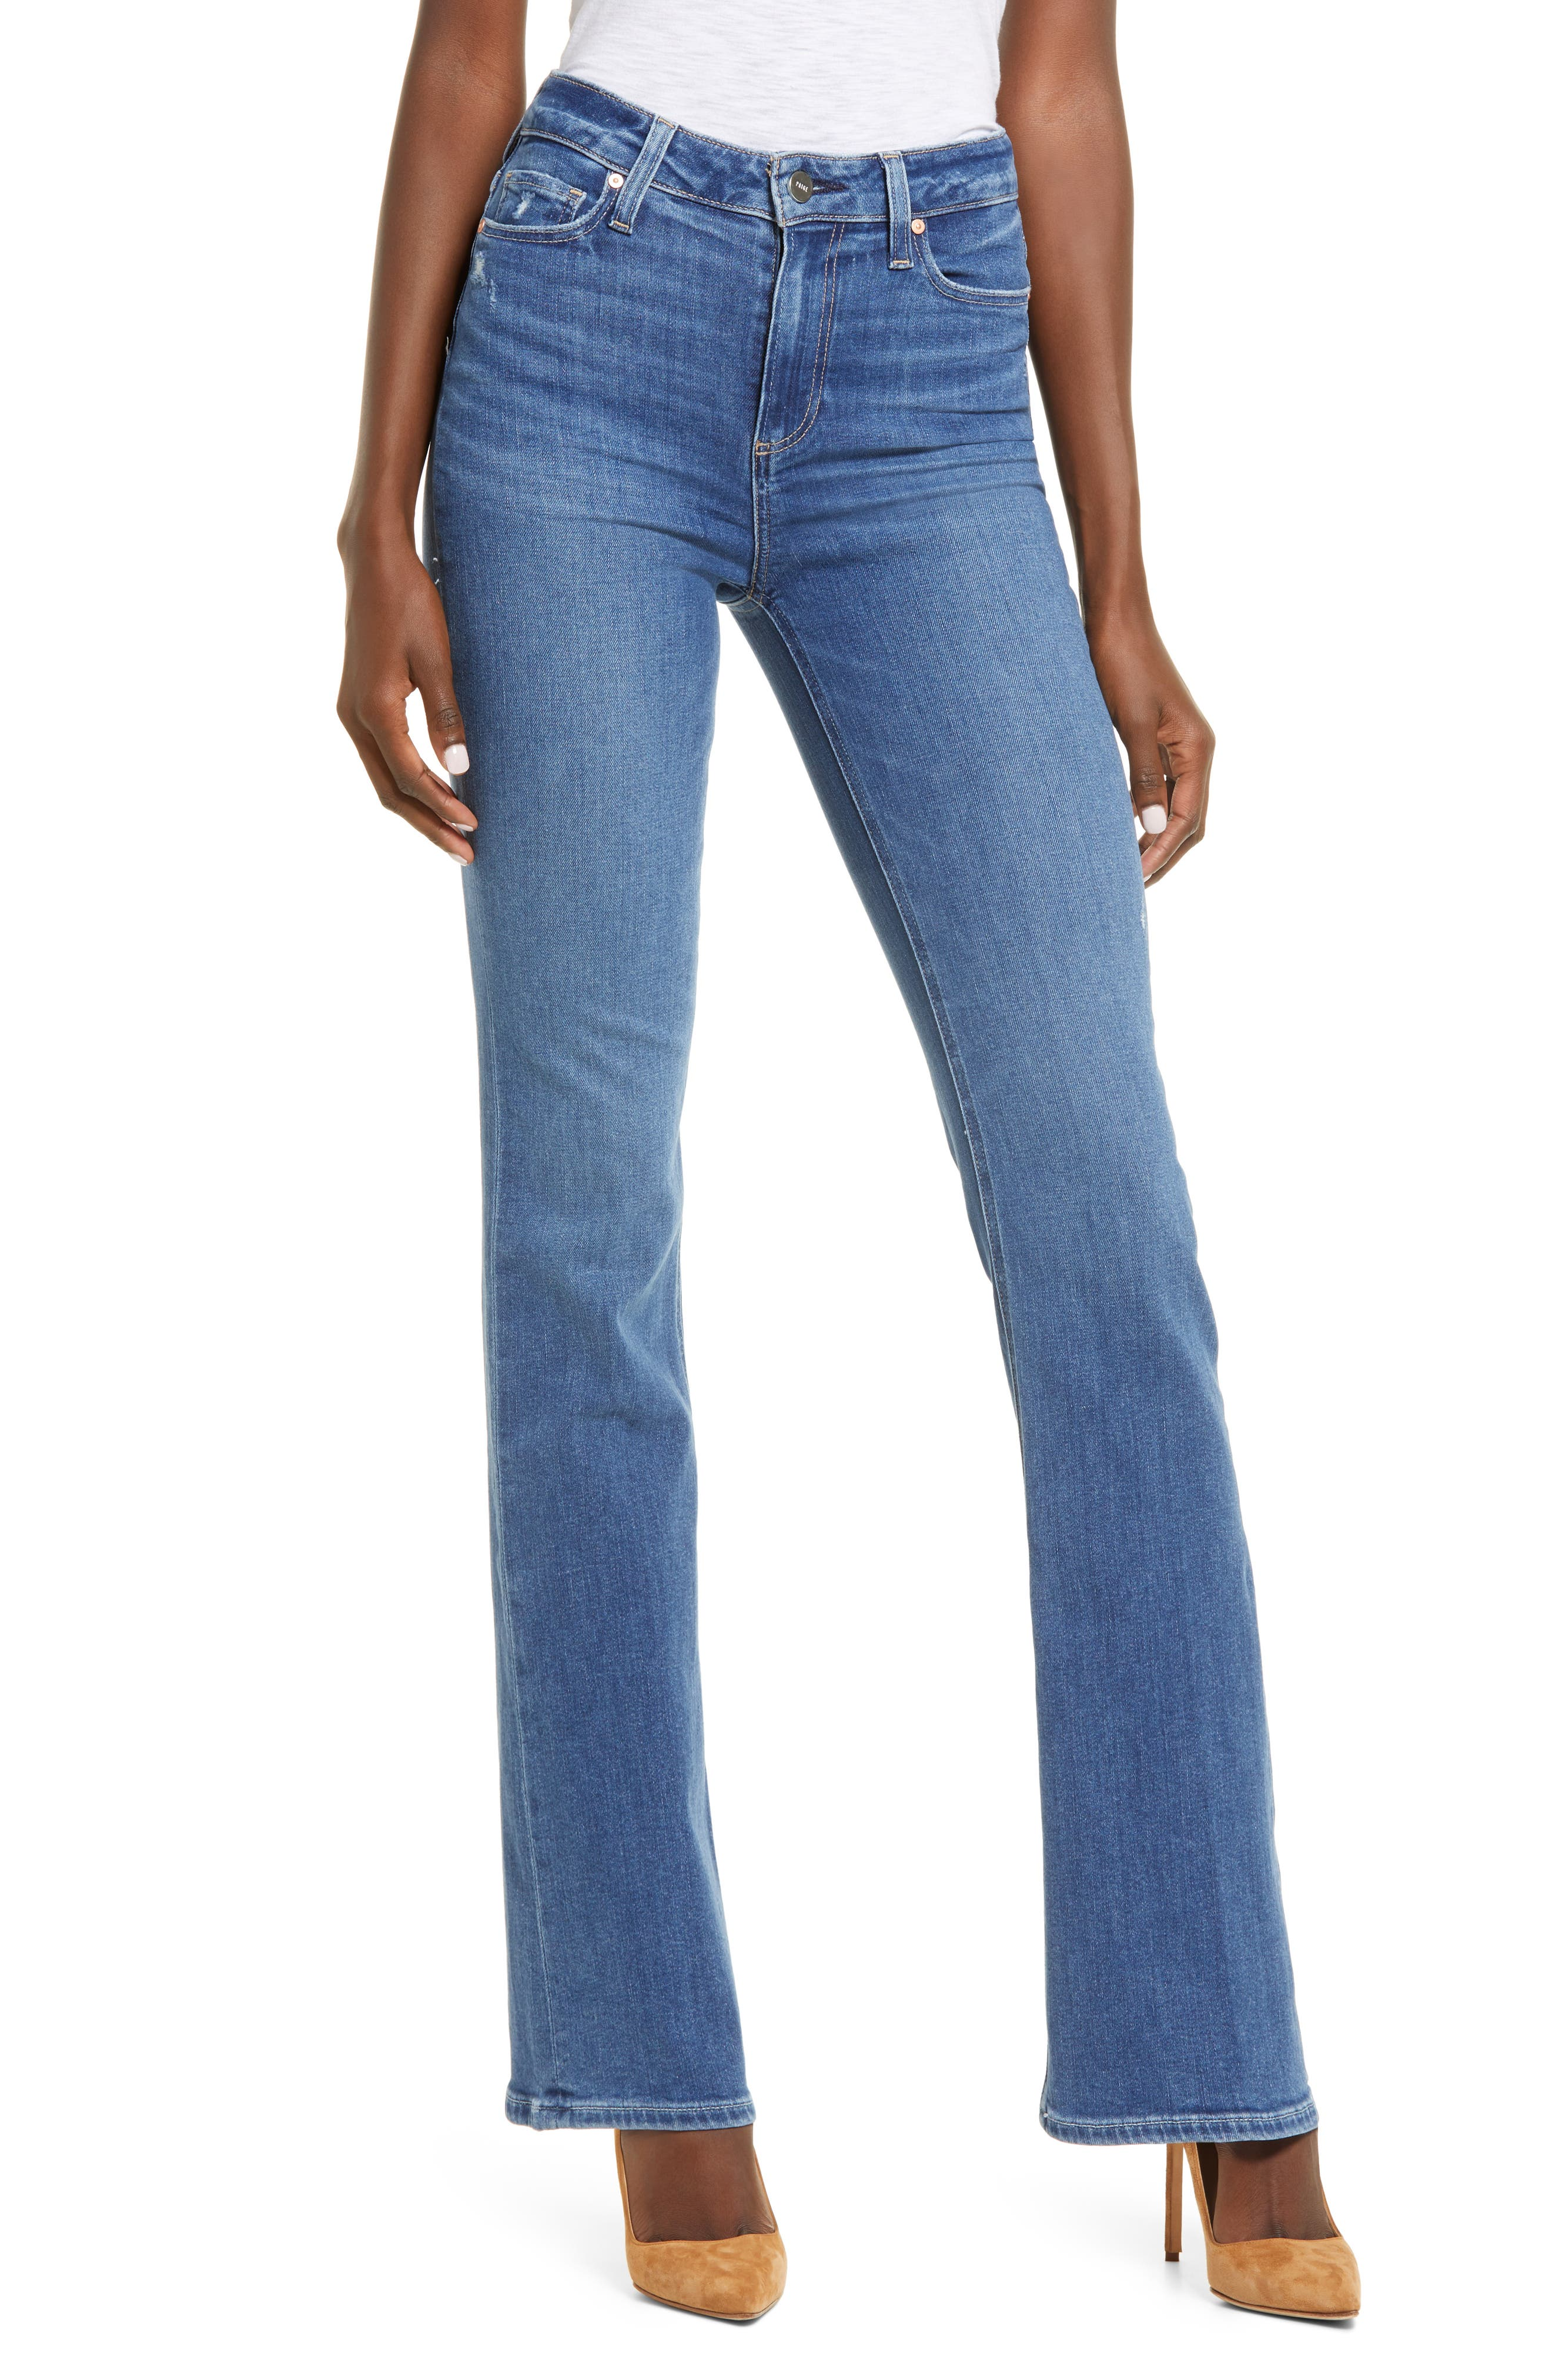 PAIGE Transcend Laurel Canyon High Waist Flare Jeans (On the Rocks Distressed) | Nordstrom